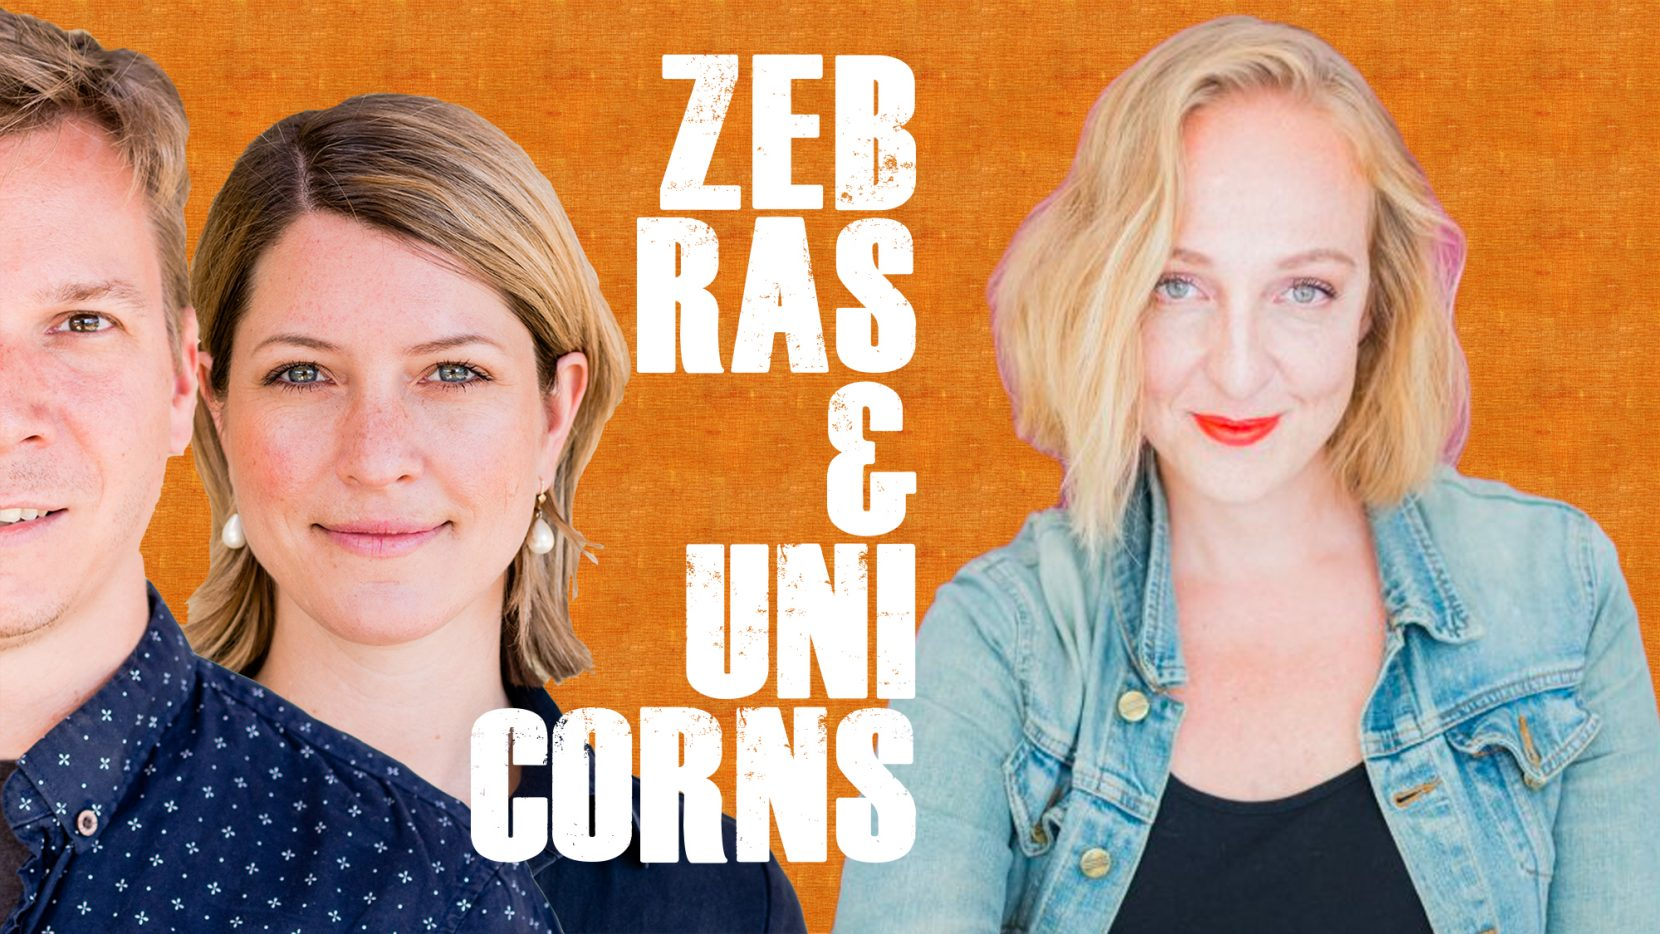 Nunu Kaller, Podcast, Zebras, Greenwashing